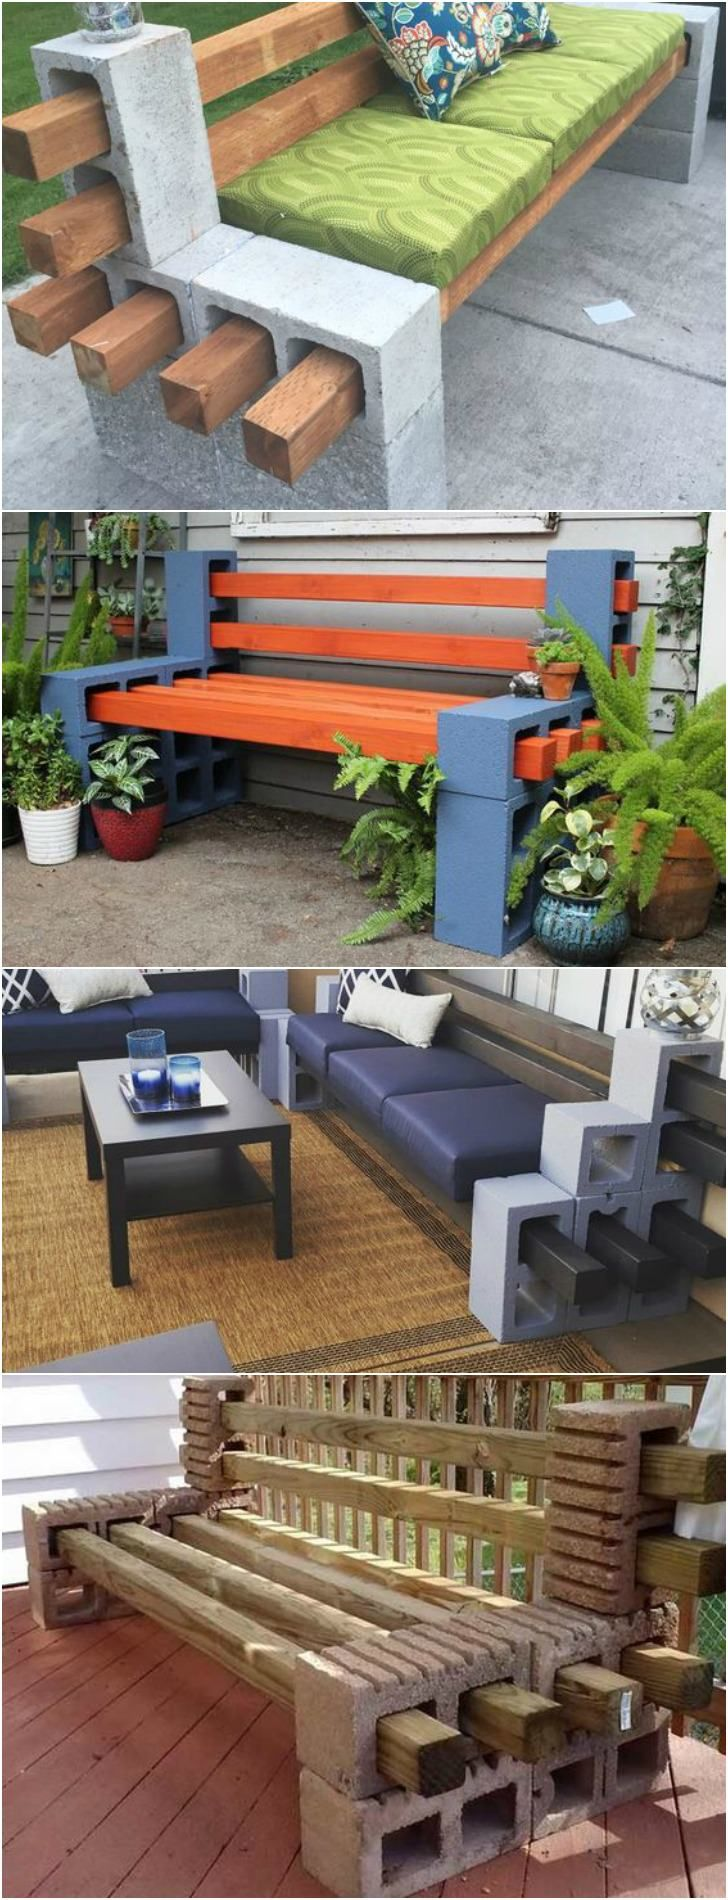 Outdoor Decorating Ideas Best 25 Outdoor Decor Ideas On Pinterest  Diy Yard Decor